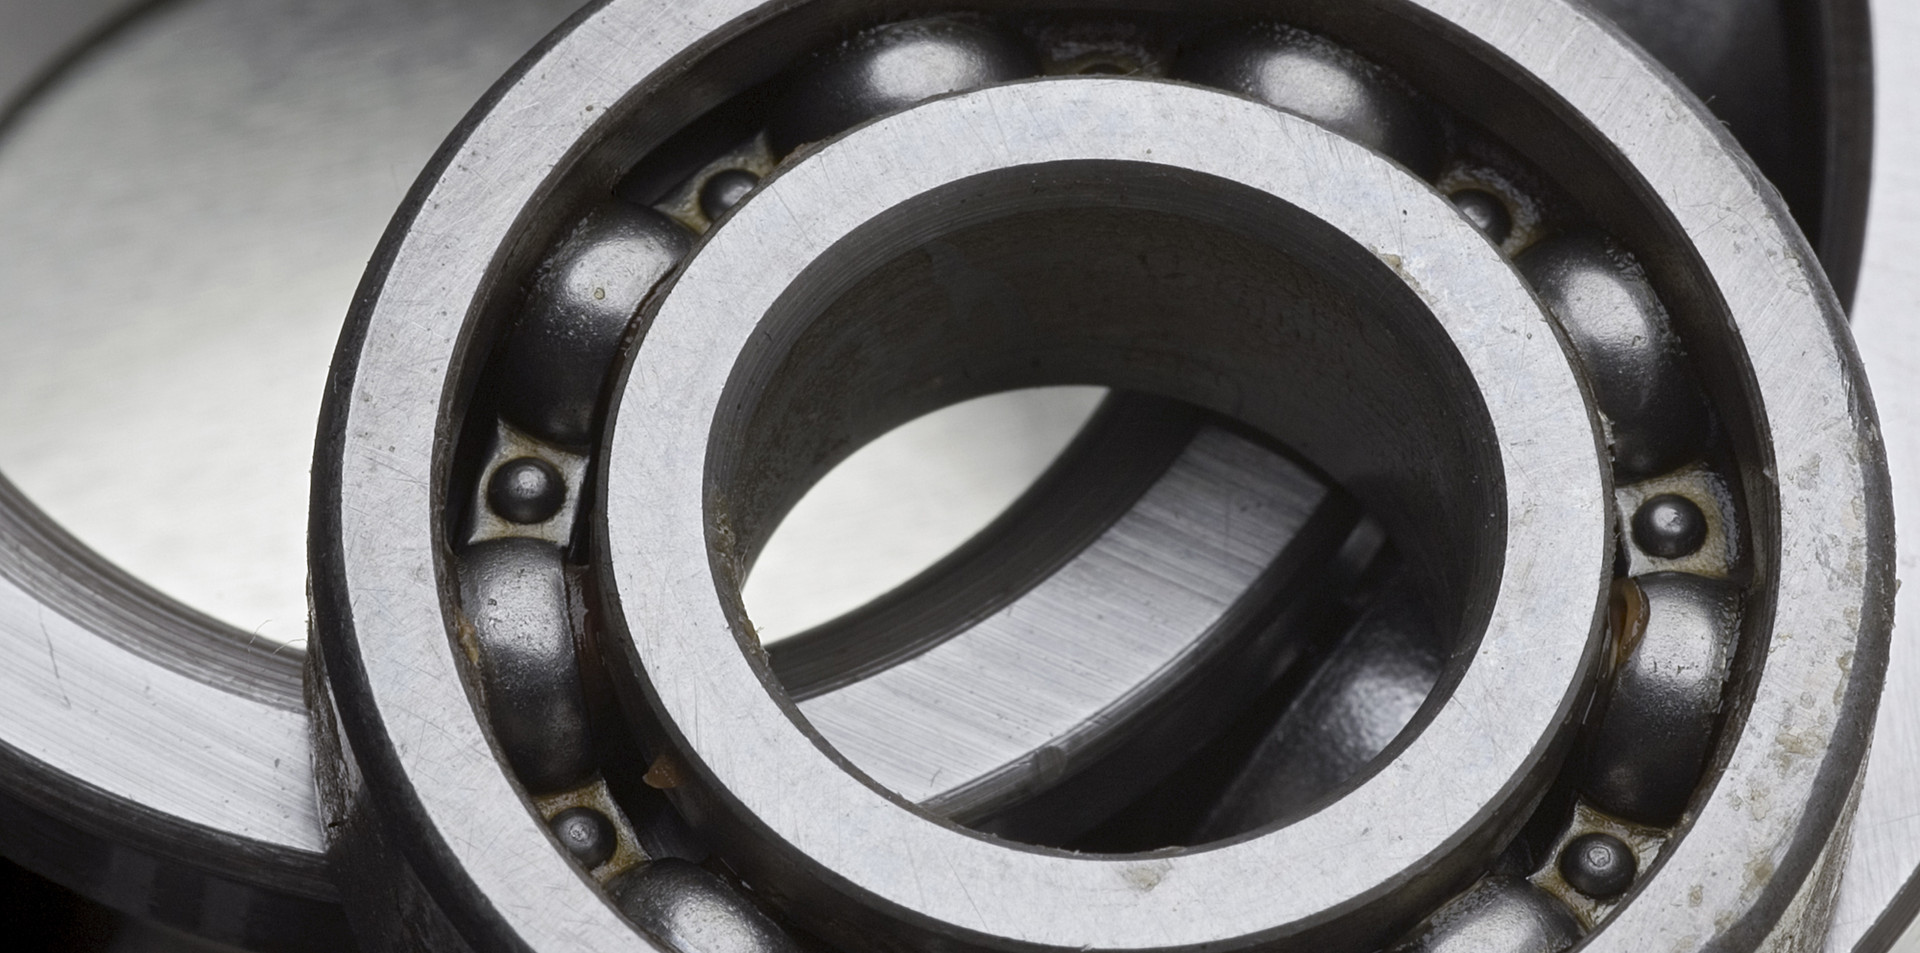 OEM Supplier Replaces Expensive Grease